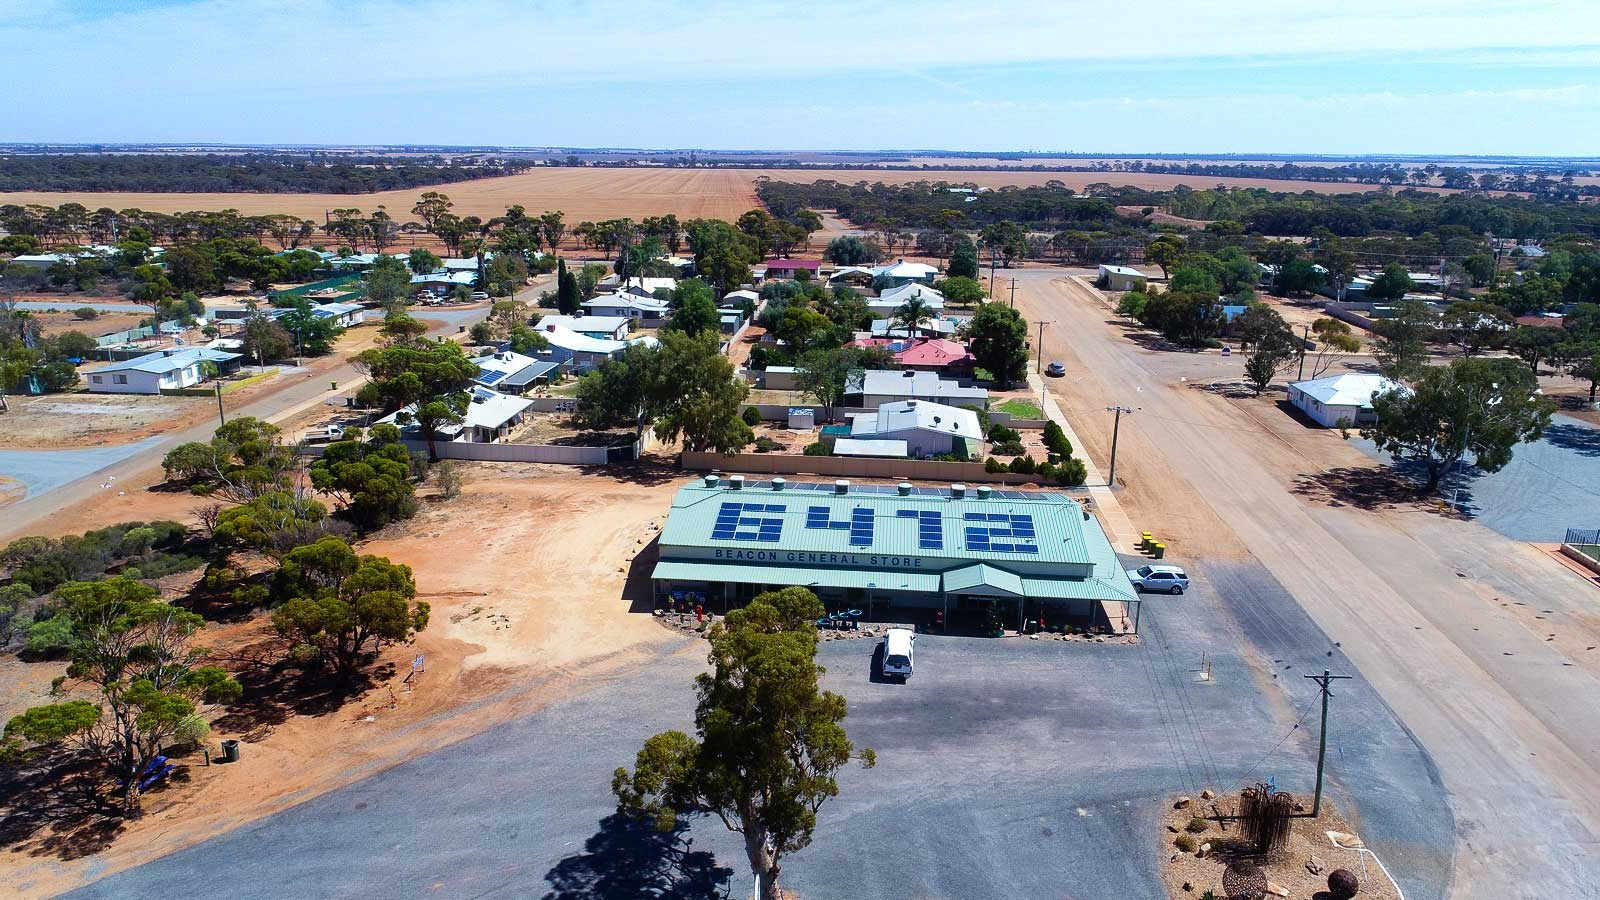 Solar Trail Co-op general store aerial view from drone showing solar panels arranged in postcode 6472 on roof